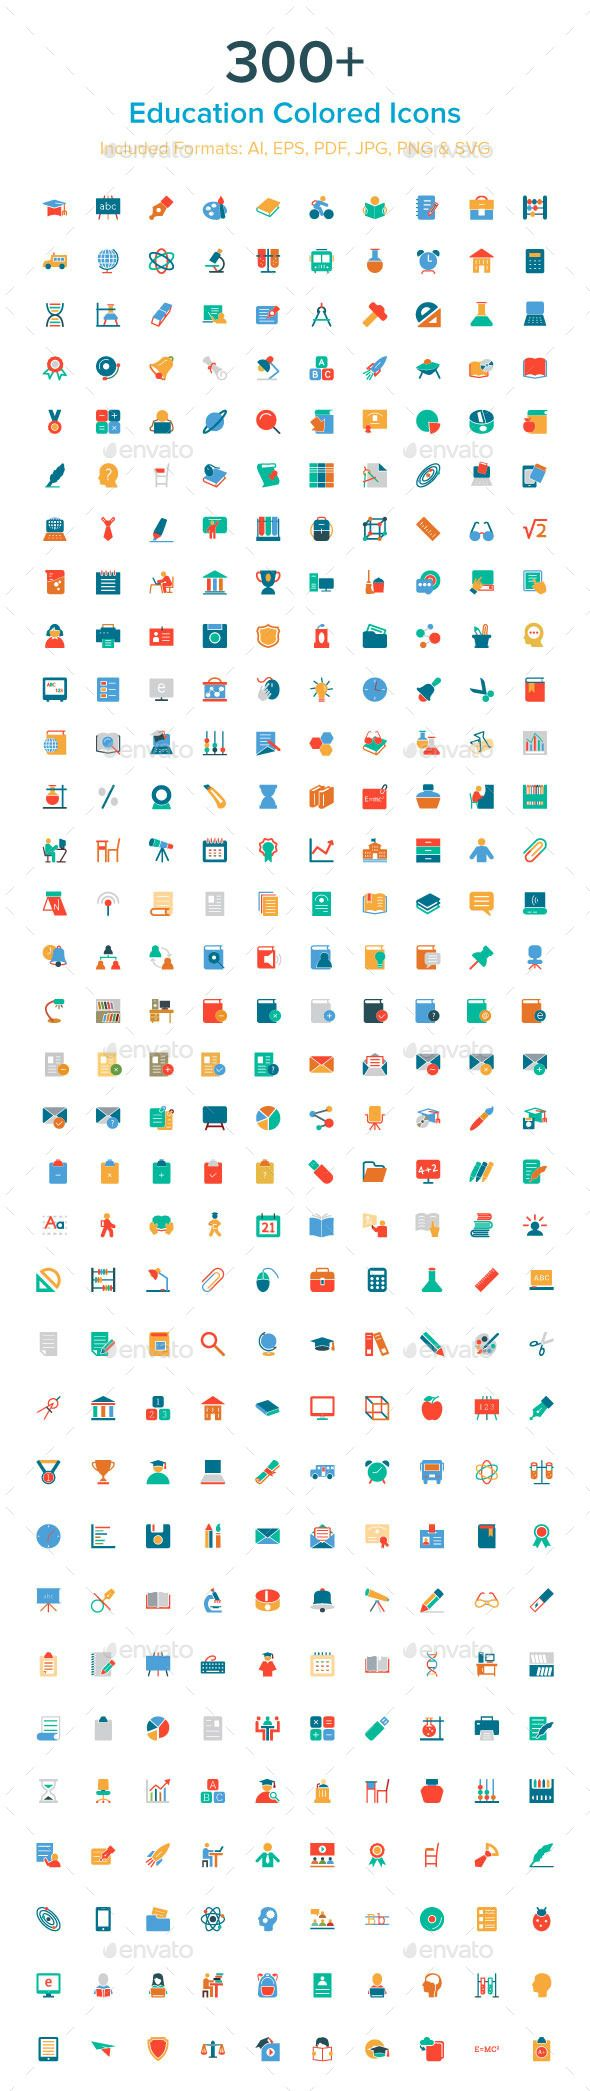 300+ Education Colored Icons — Transparent PNG #education vector icon set #education clipart • Available here → https://graphicriver.net/item/300-education-colored-icons/10485602?ref=pxcr